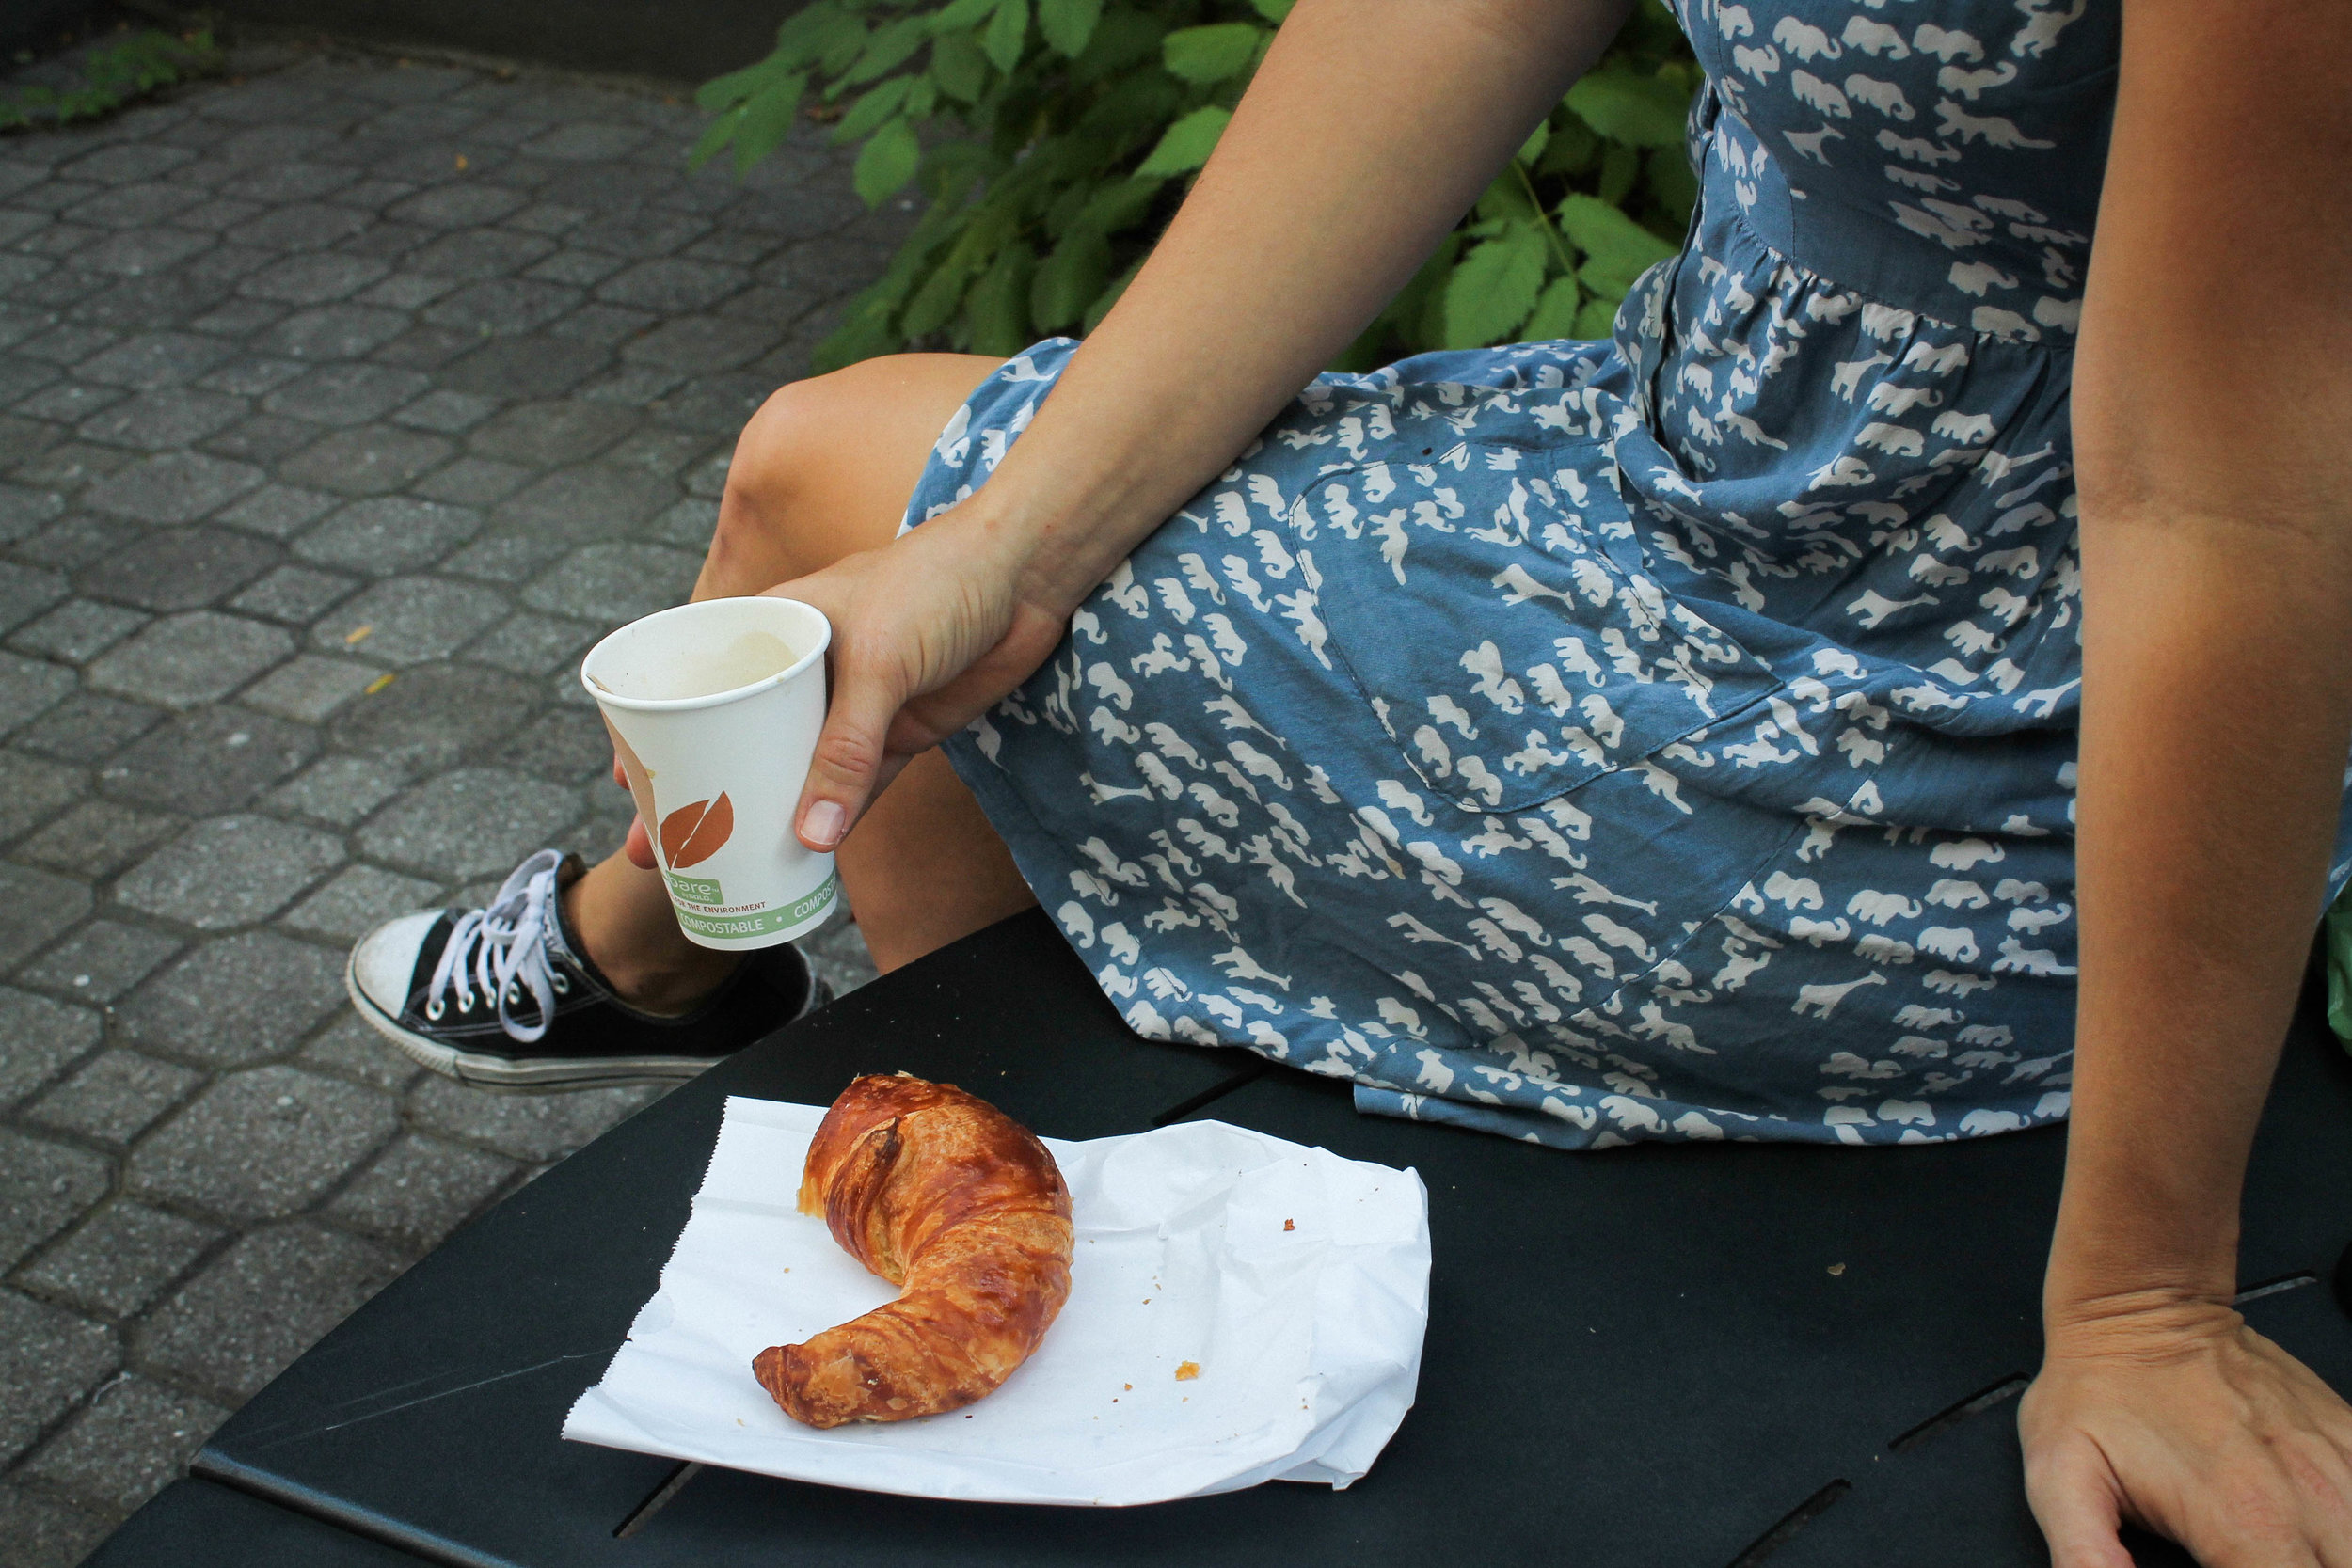 Coffee + croissants. One of the things I discovered from backpacking around Europe at 19, was that these two together are a small form of perfection in everyday life.